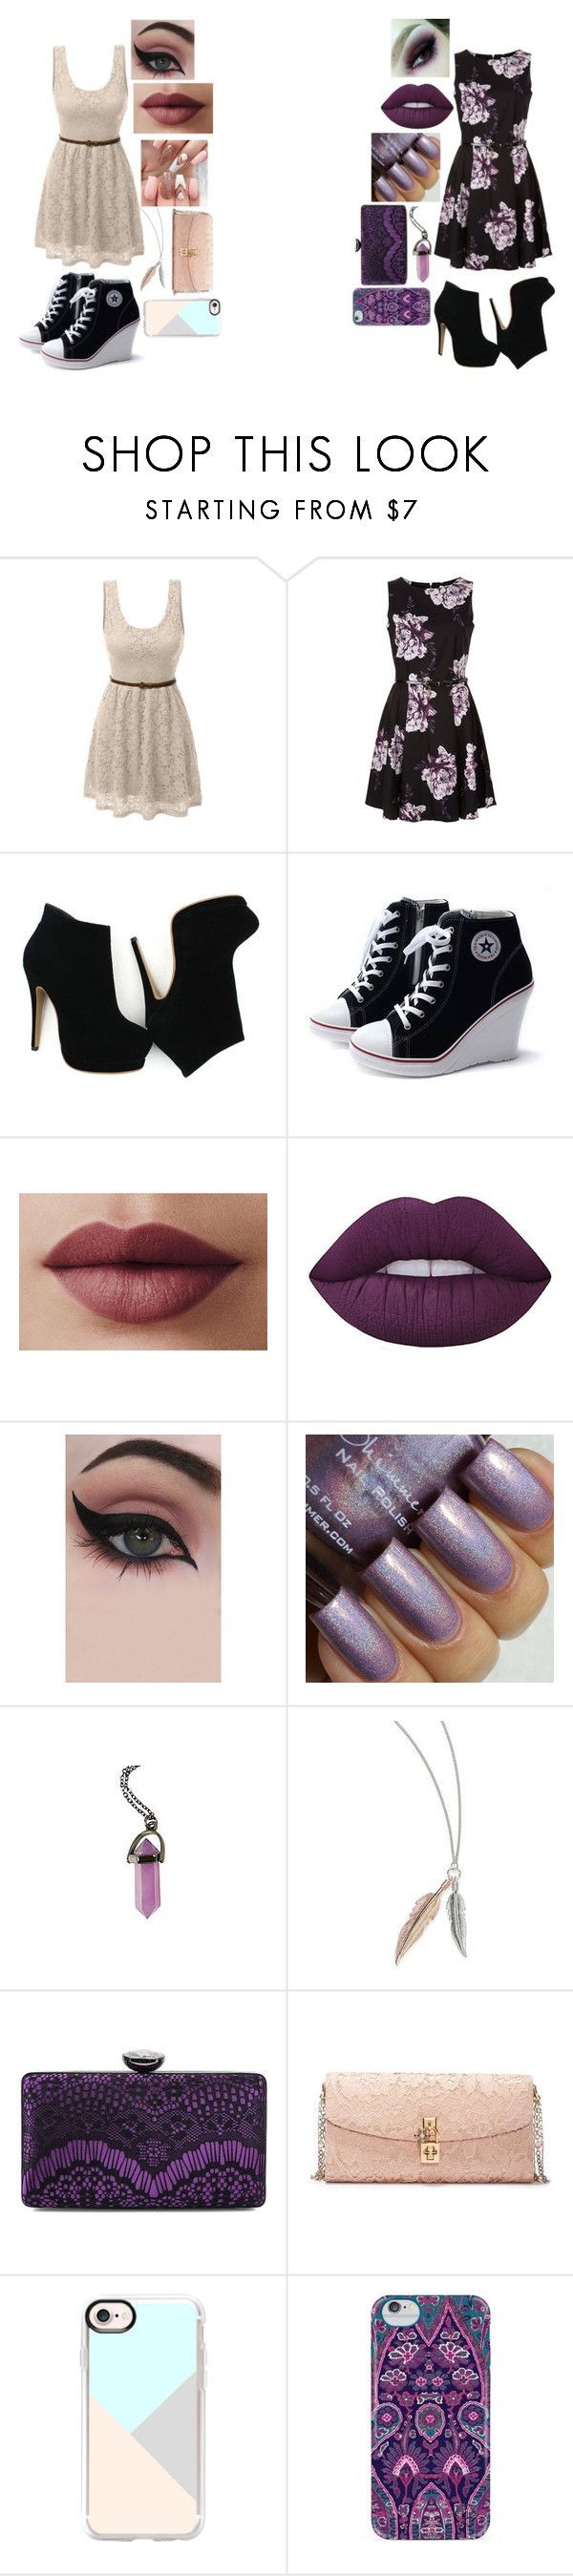 "12a7dae46849813e5291de63be9dd88d - ""Untitled #654"" by dino-satan666 ❤ liked on Polyvore featuring LE3NO, Lime Cri..."